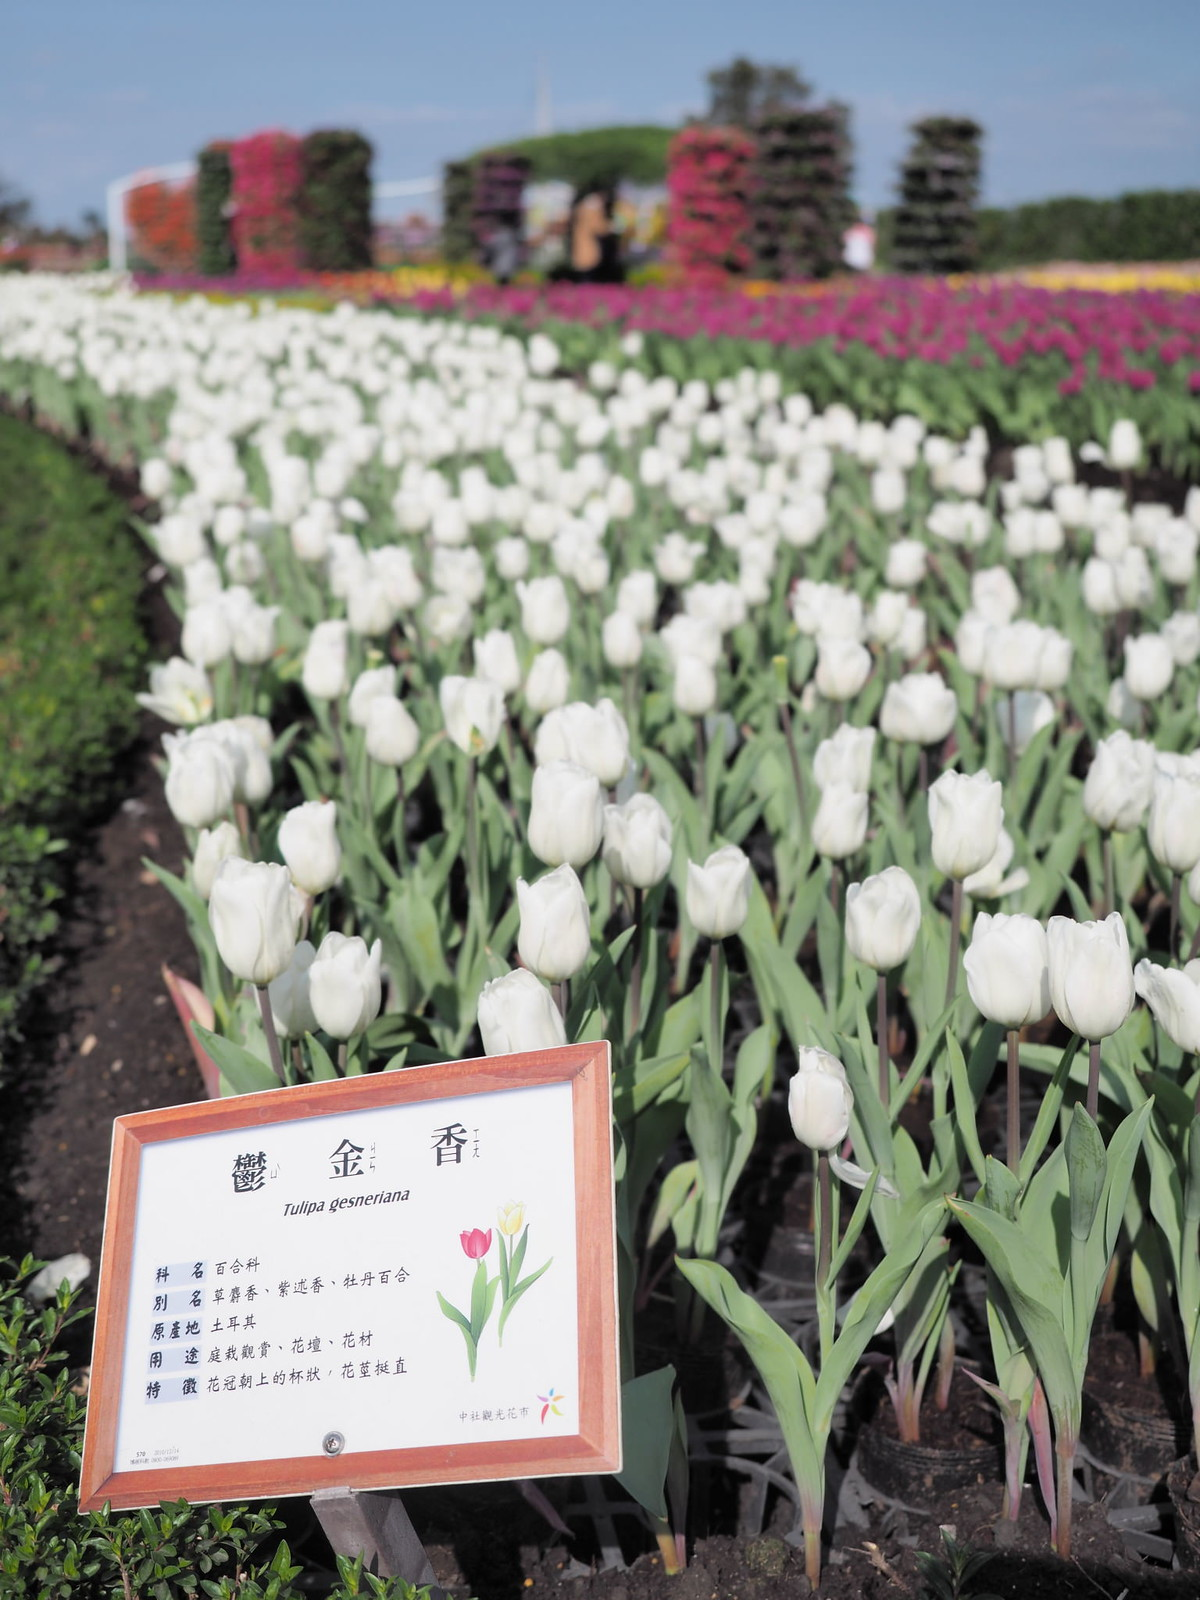 White tulip flowers at Chungshe Flower Garden (中社觀光花市)